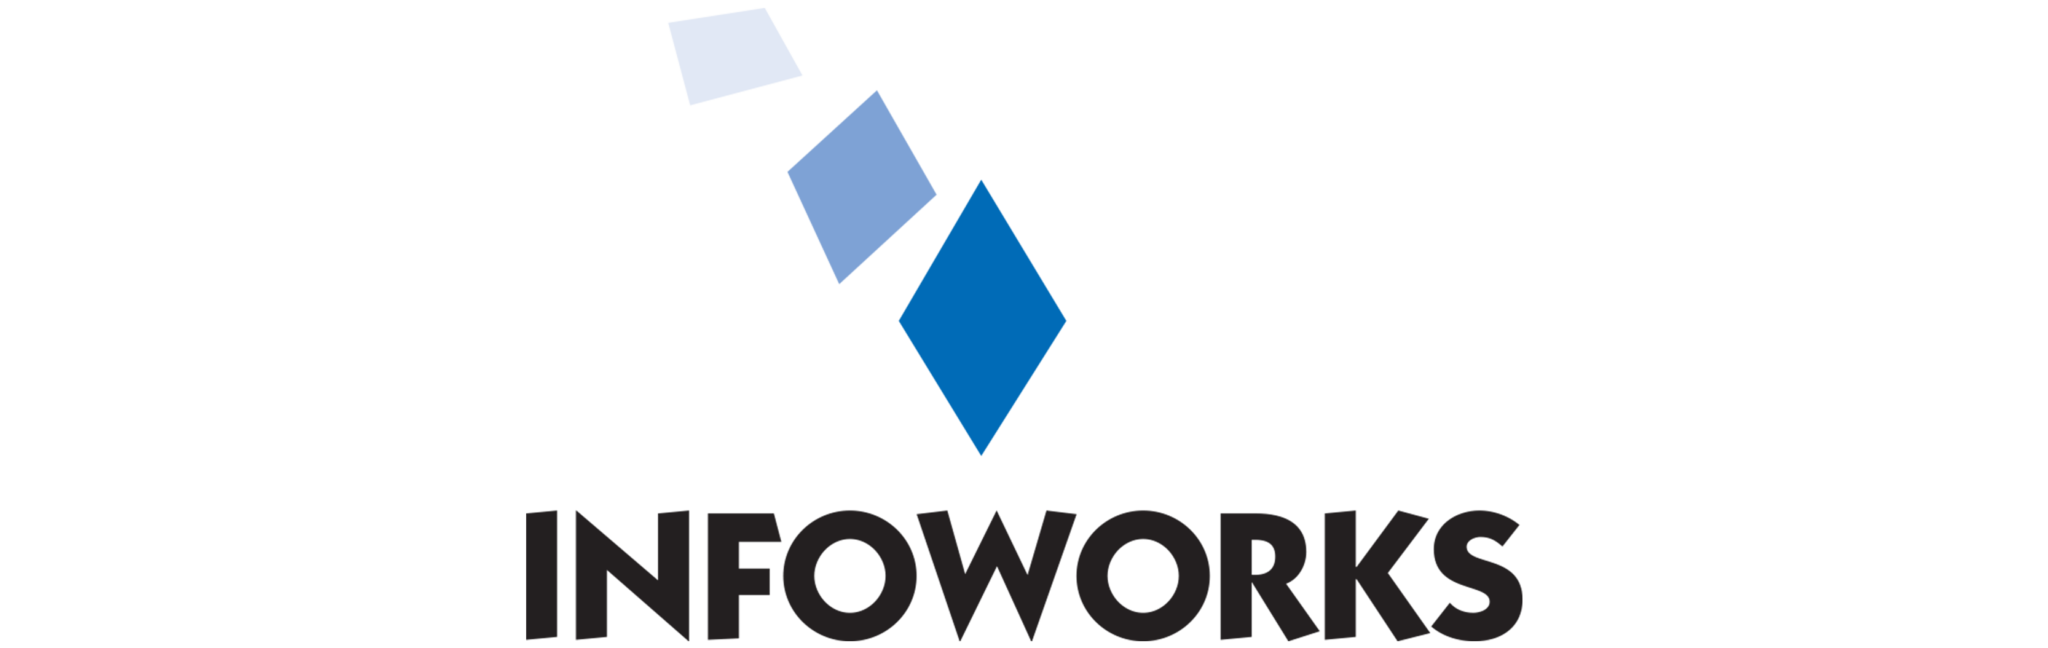 InfoWorks Automatisering bv